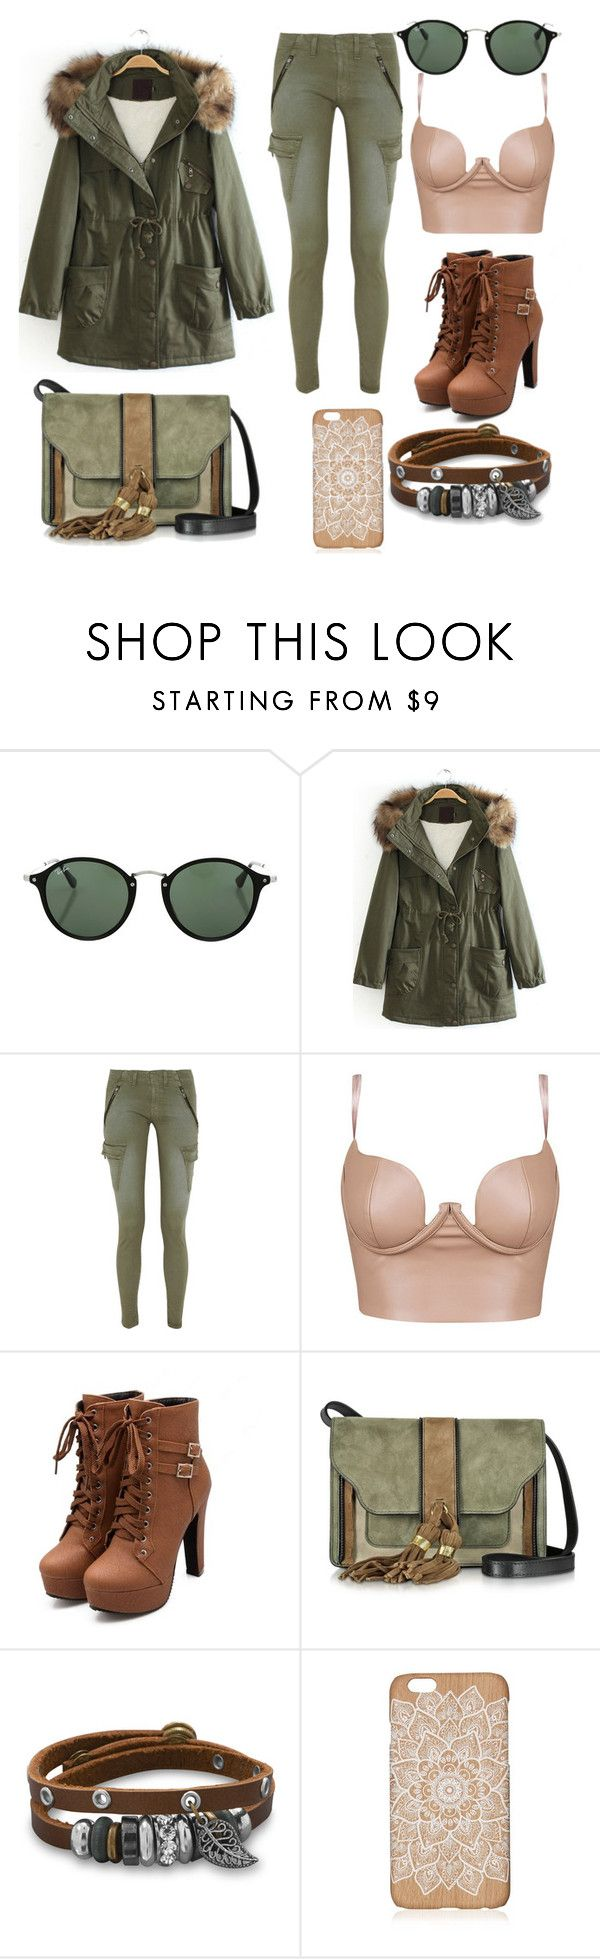 """""""camouflage"""" by kimberly-jackson-osorio on Polyvore featuring Ray-Ban, rag & bone/JEAN, L'Autre Chose, BillyTheTree and camostyle"""